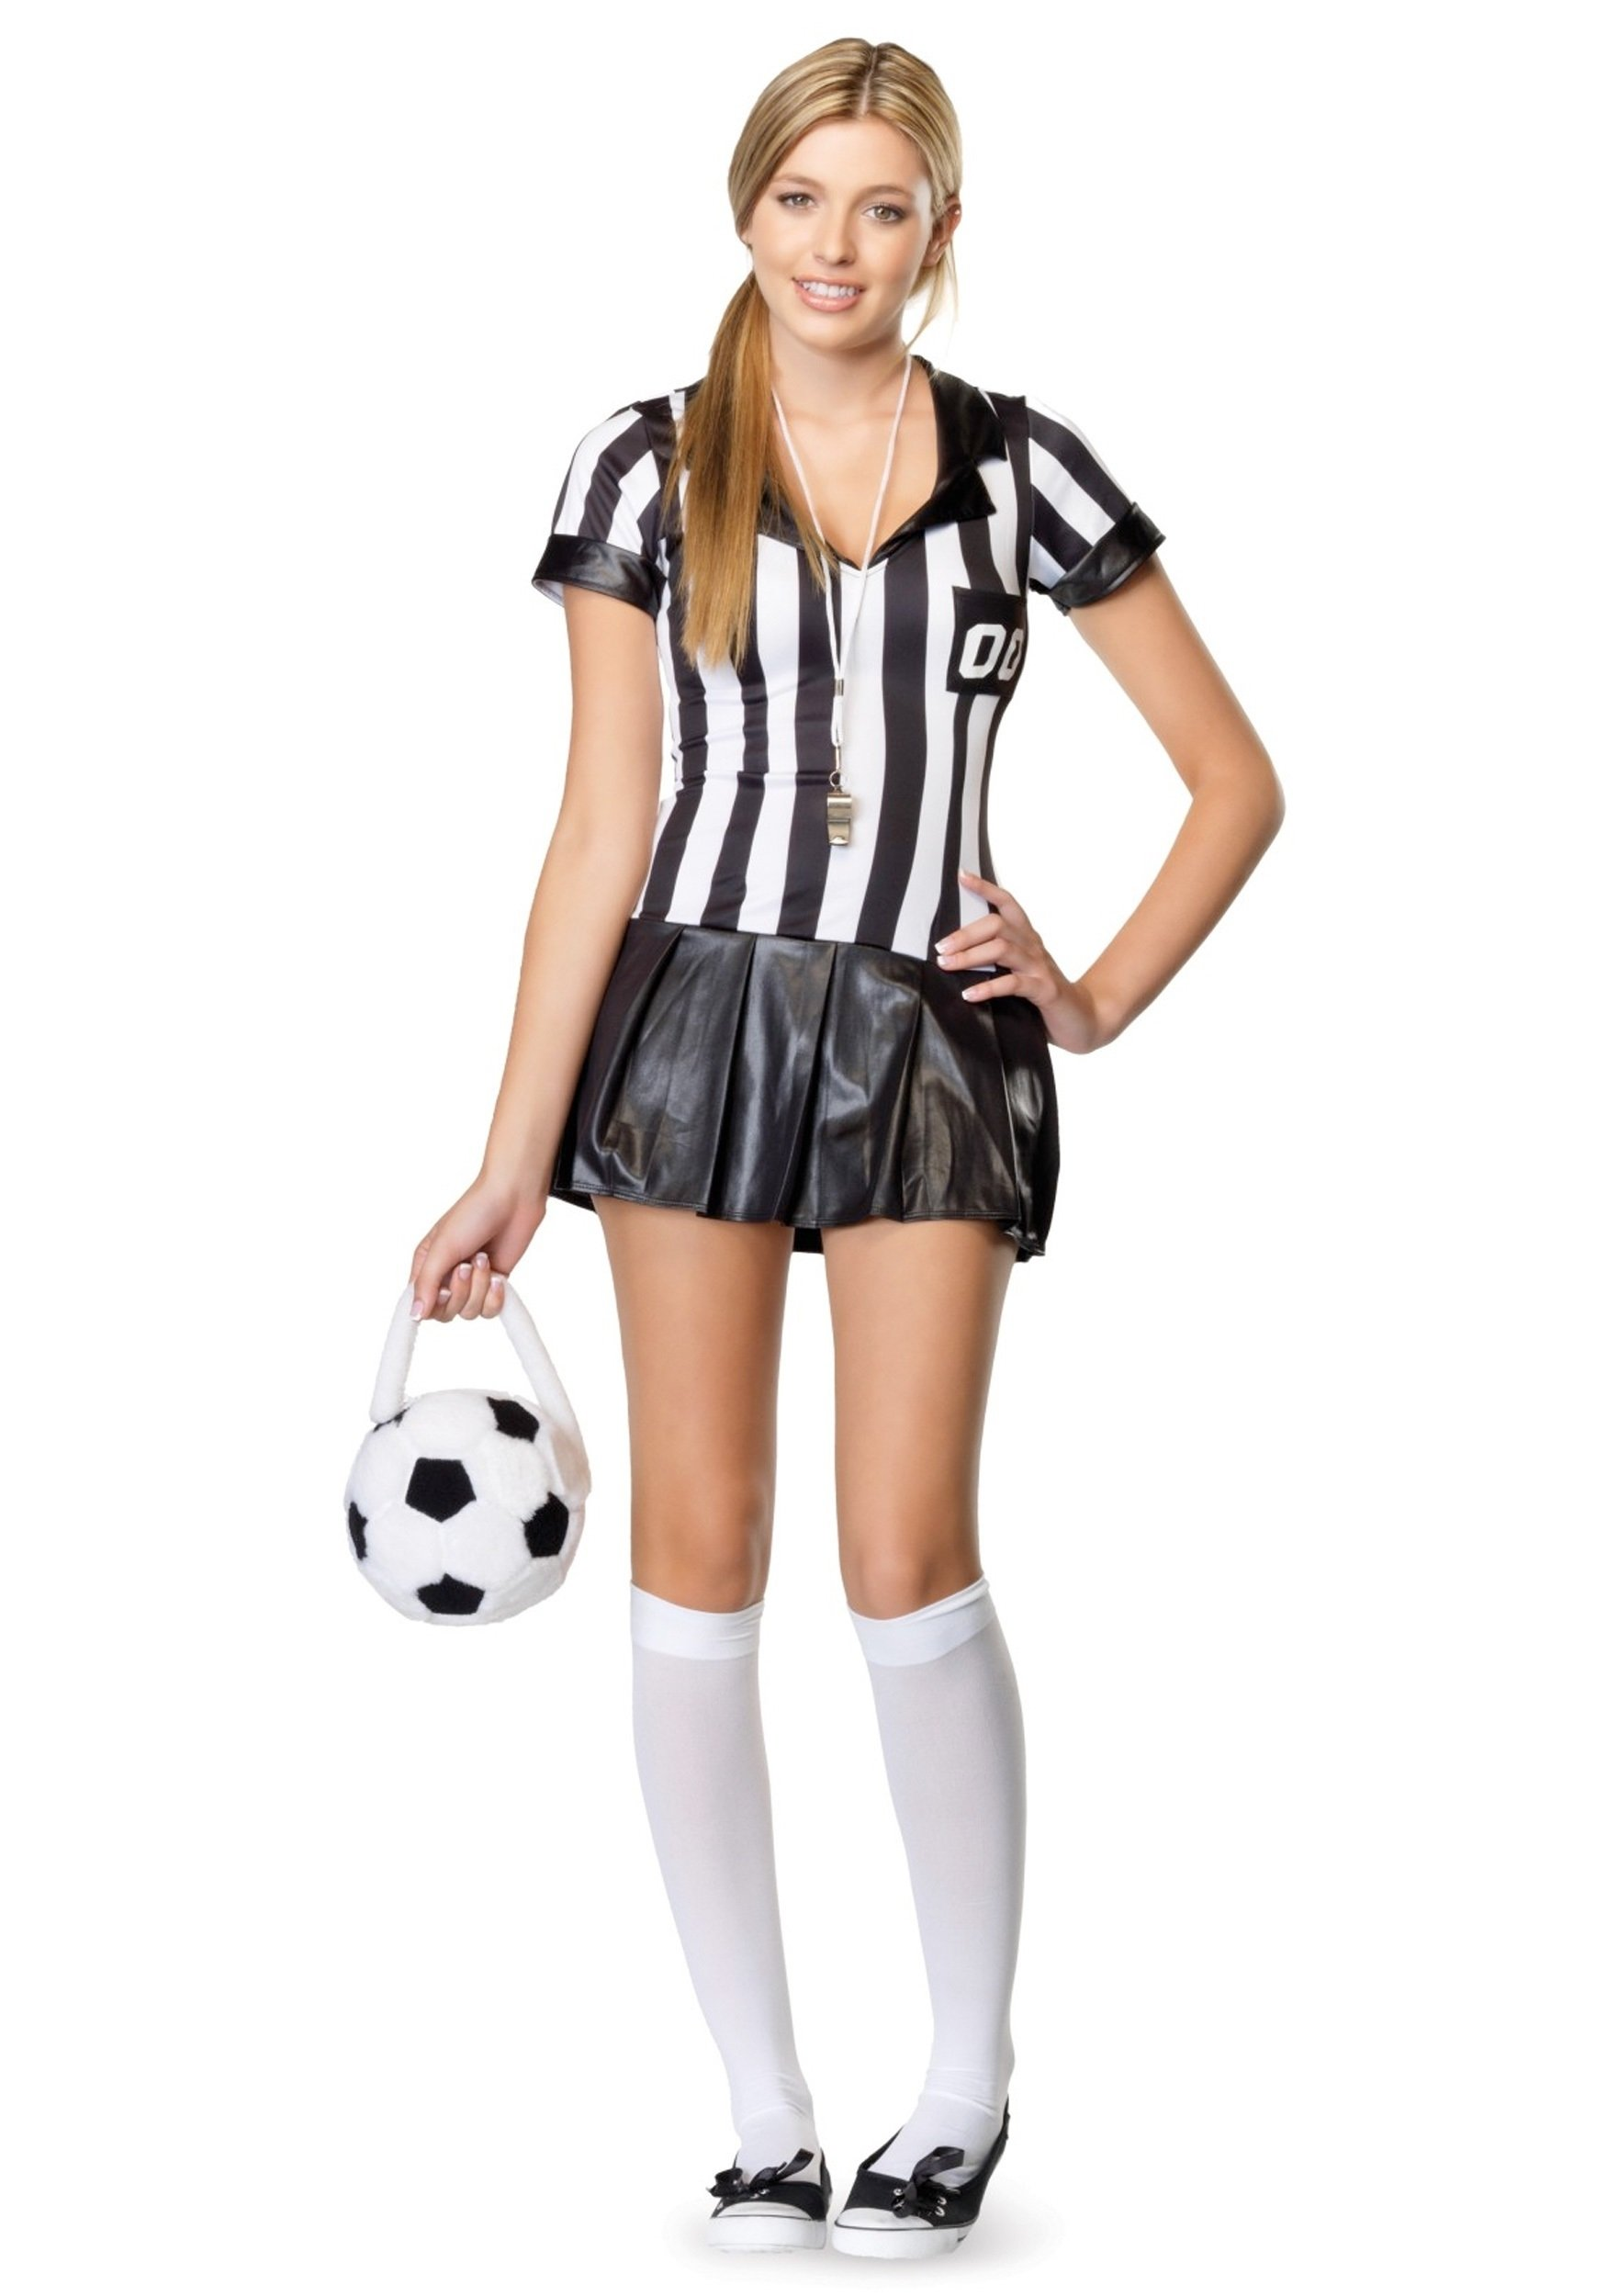 10 Nice Halloween Costume Ideas For Teenage Girls cuteteencostumes home costume ideas sports costumes referee 5  sc 1 st  Unique Ideas 2018 & 10 Nice Halloween Costume Ideas For Teenage Girls